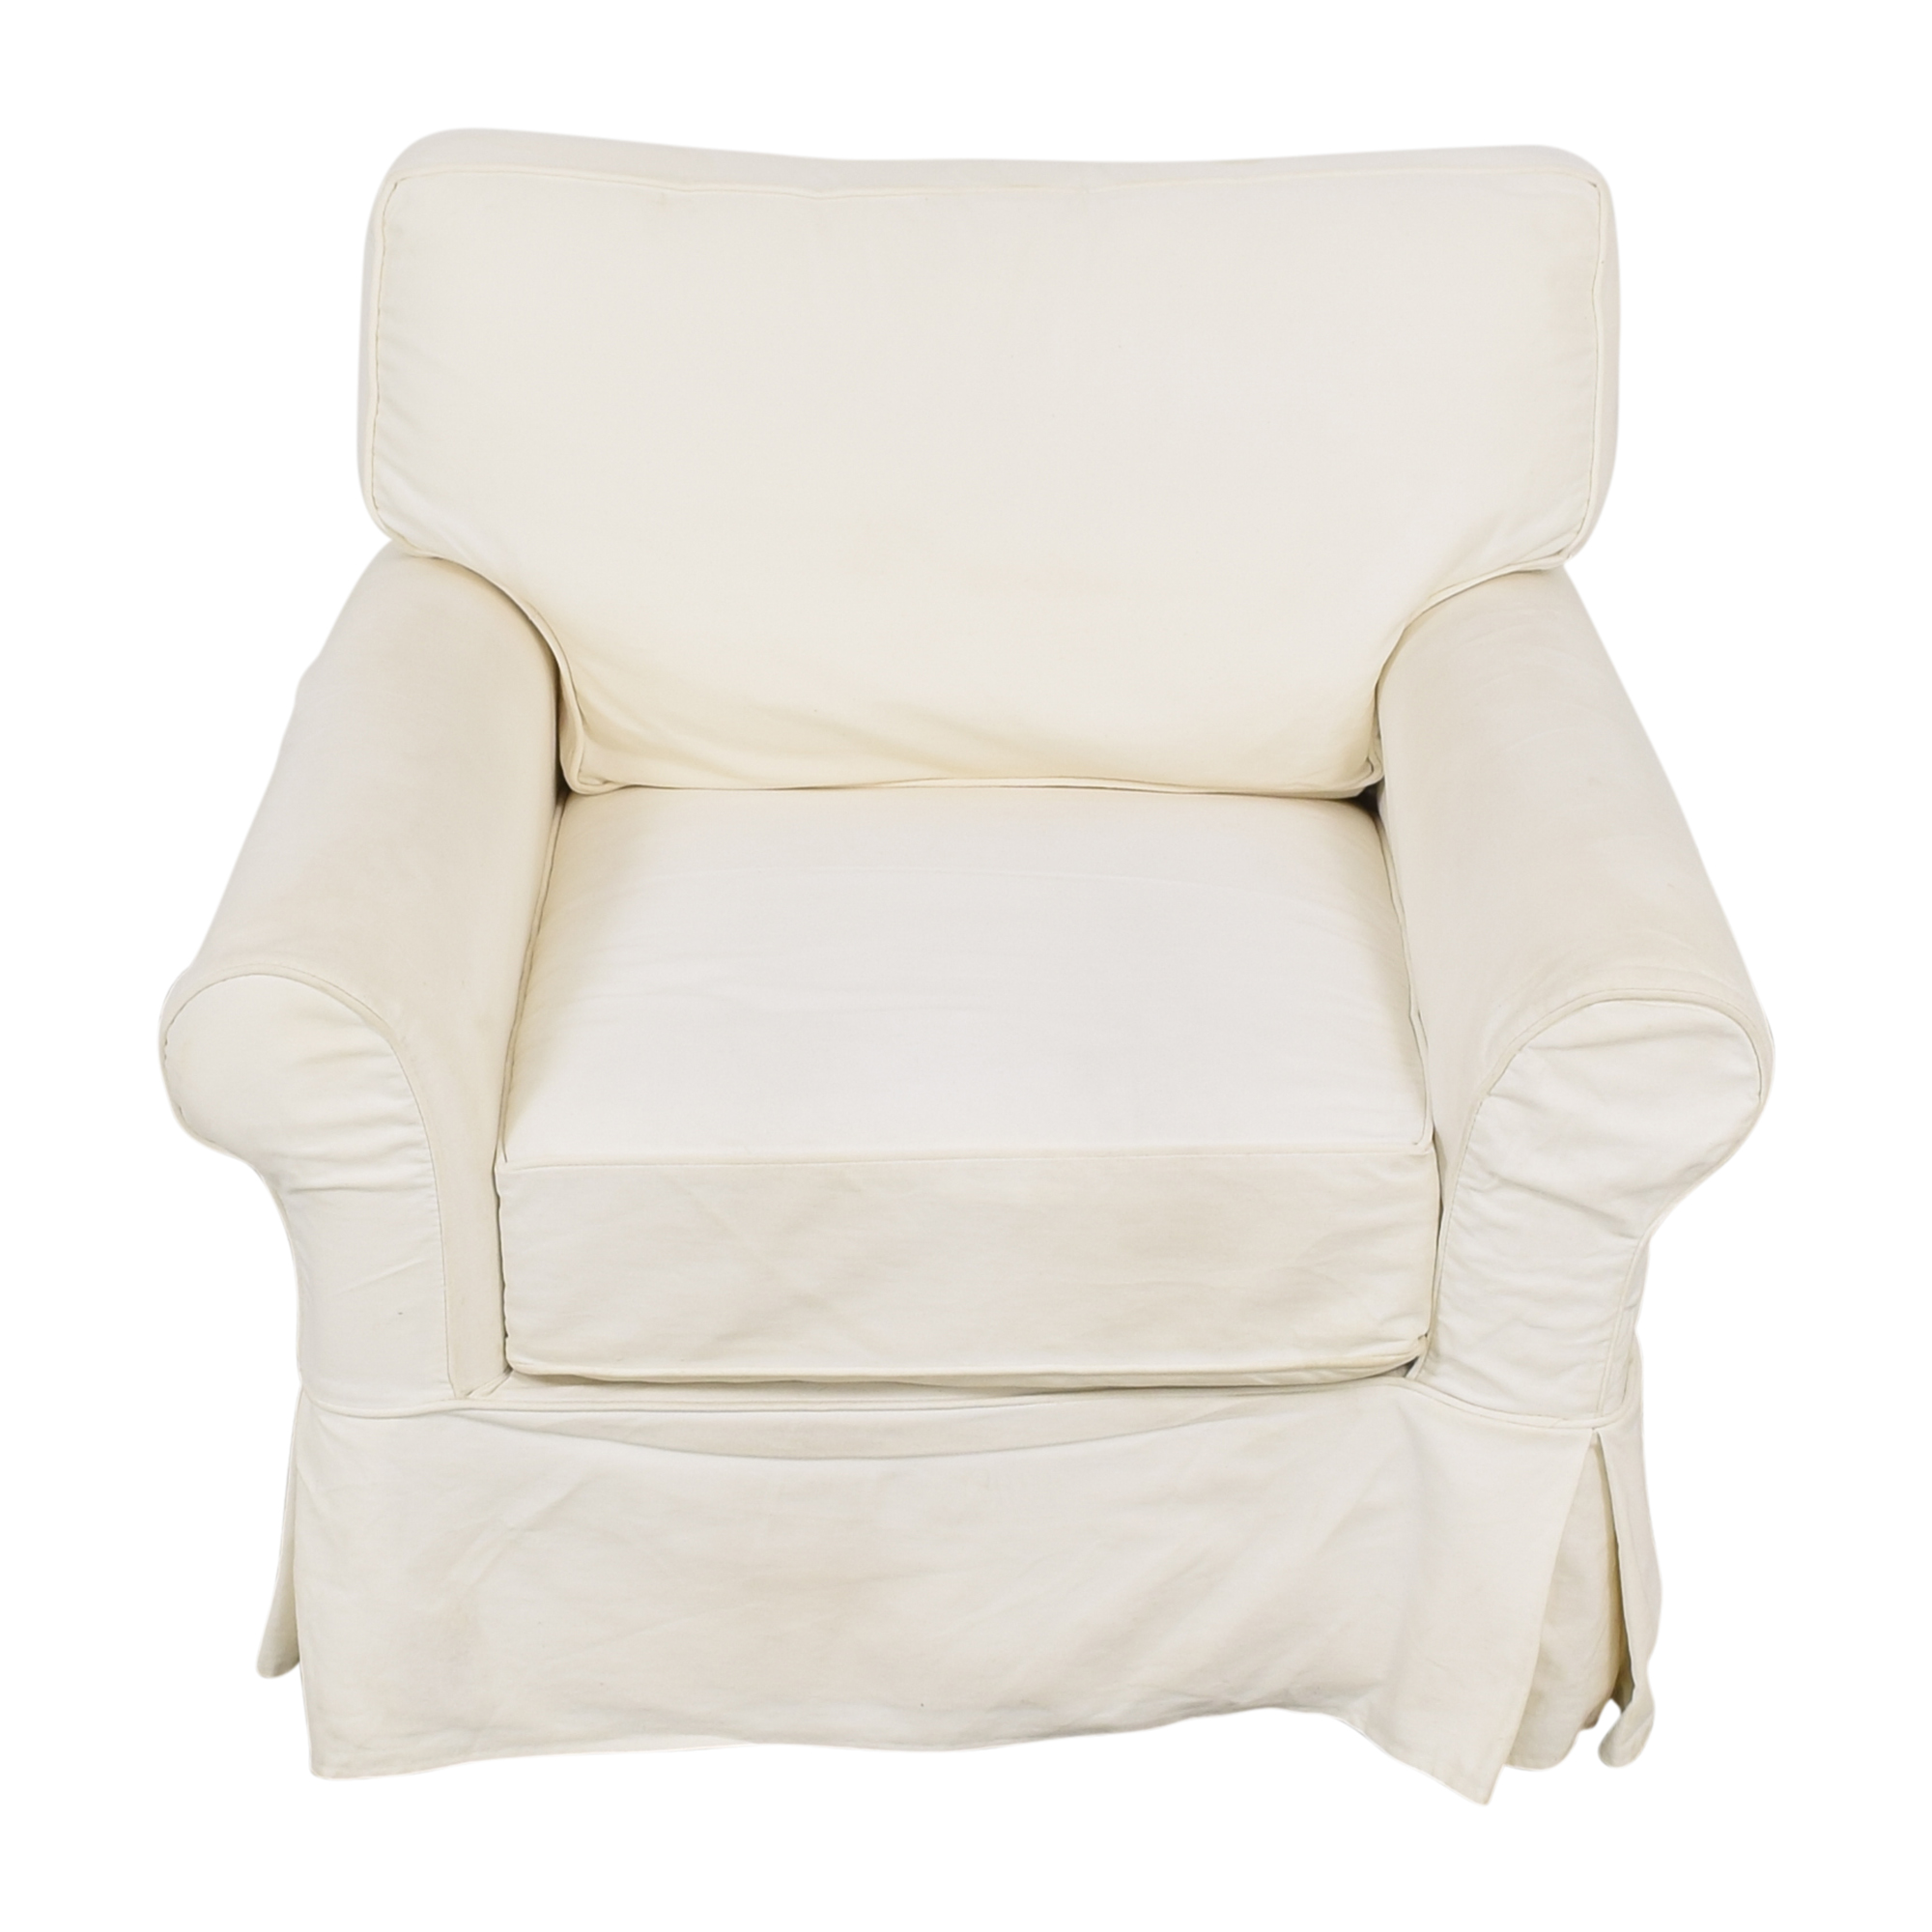 Crate & Barrel Crate & Barrel Slipcovered Arm Chair with Ottoman pa